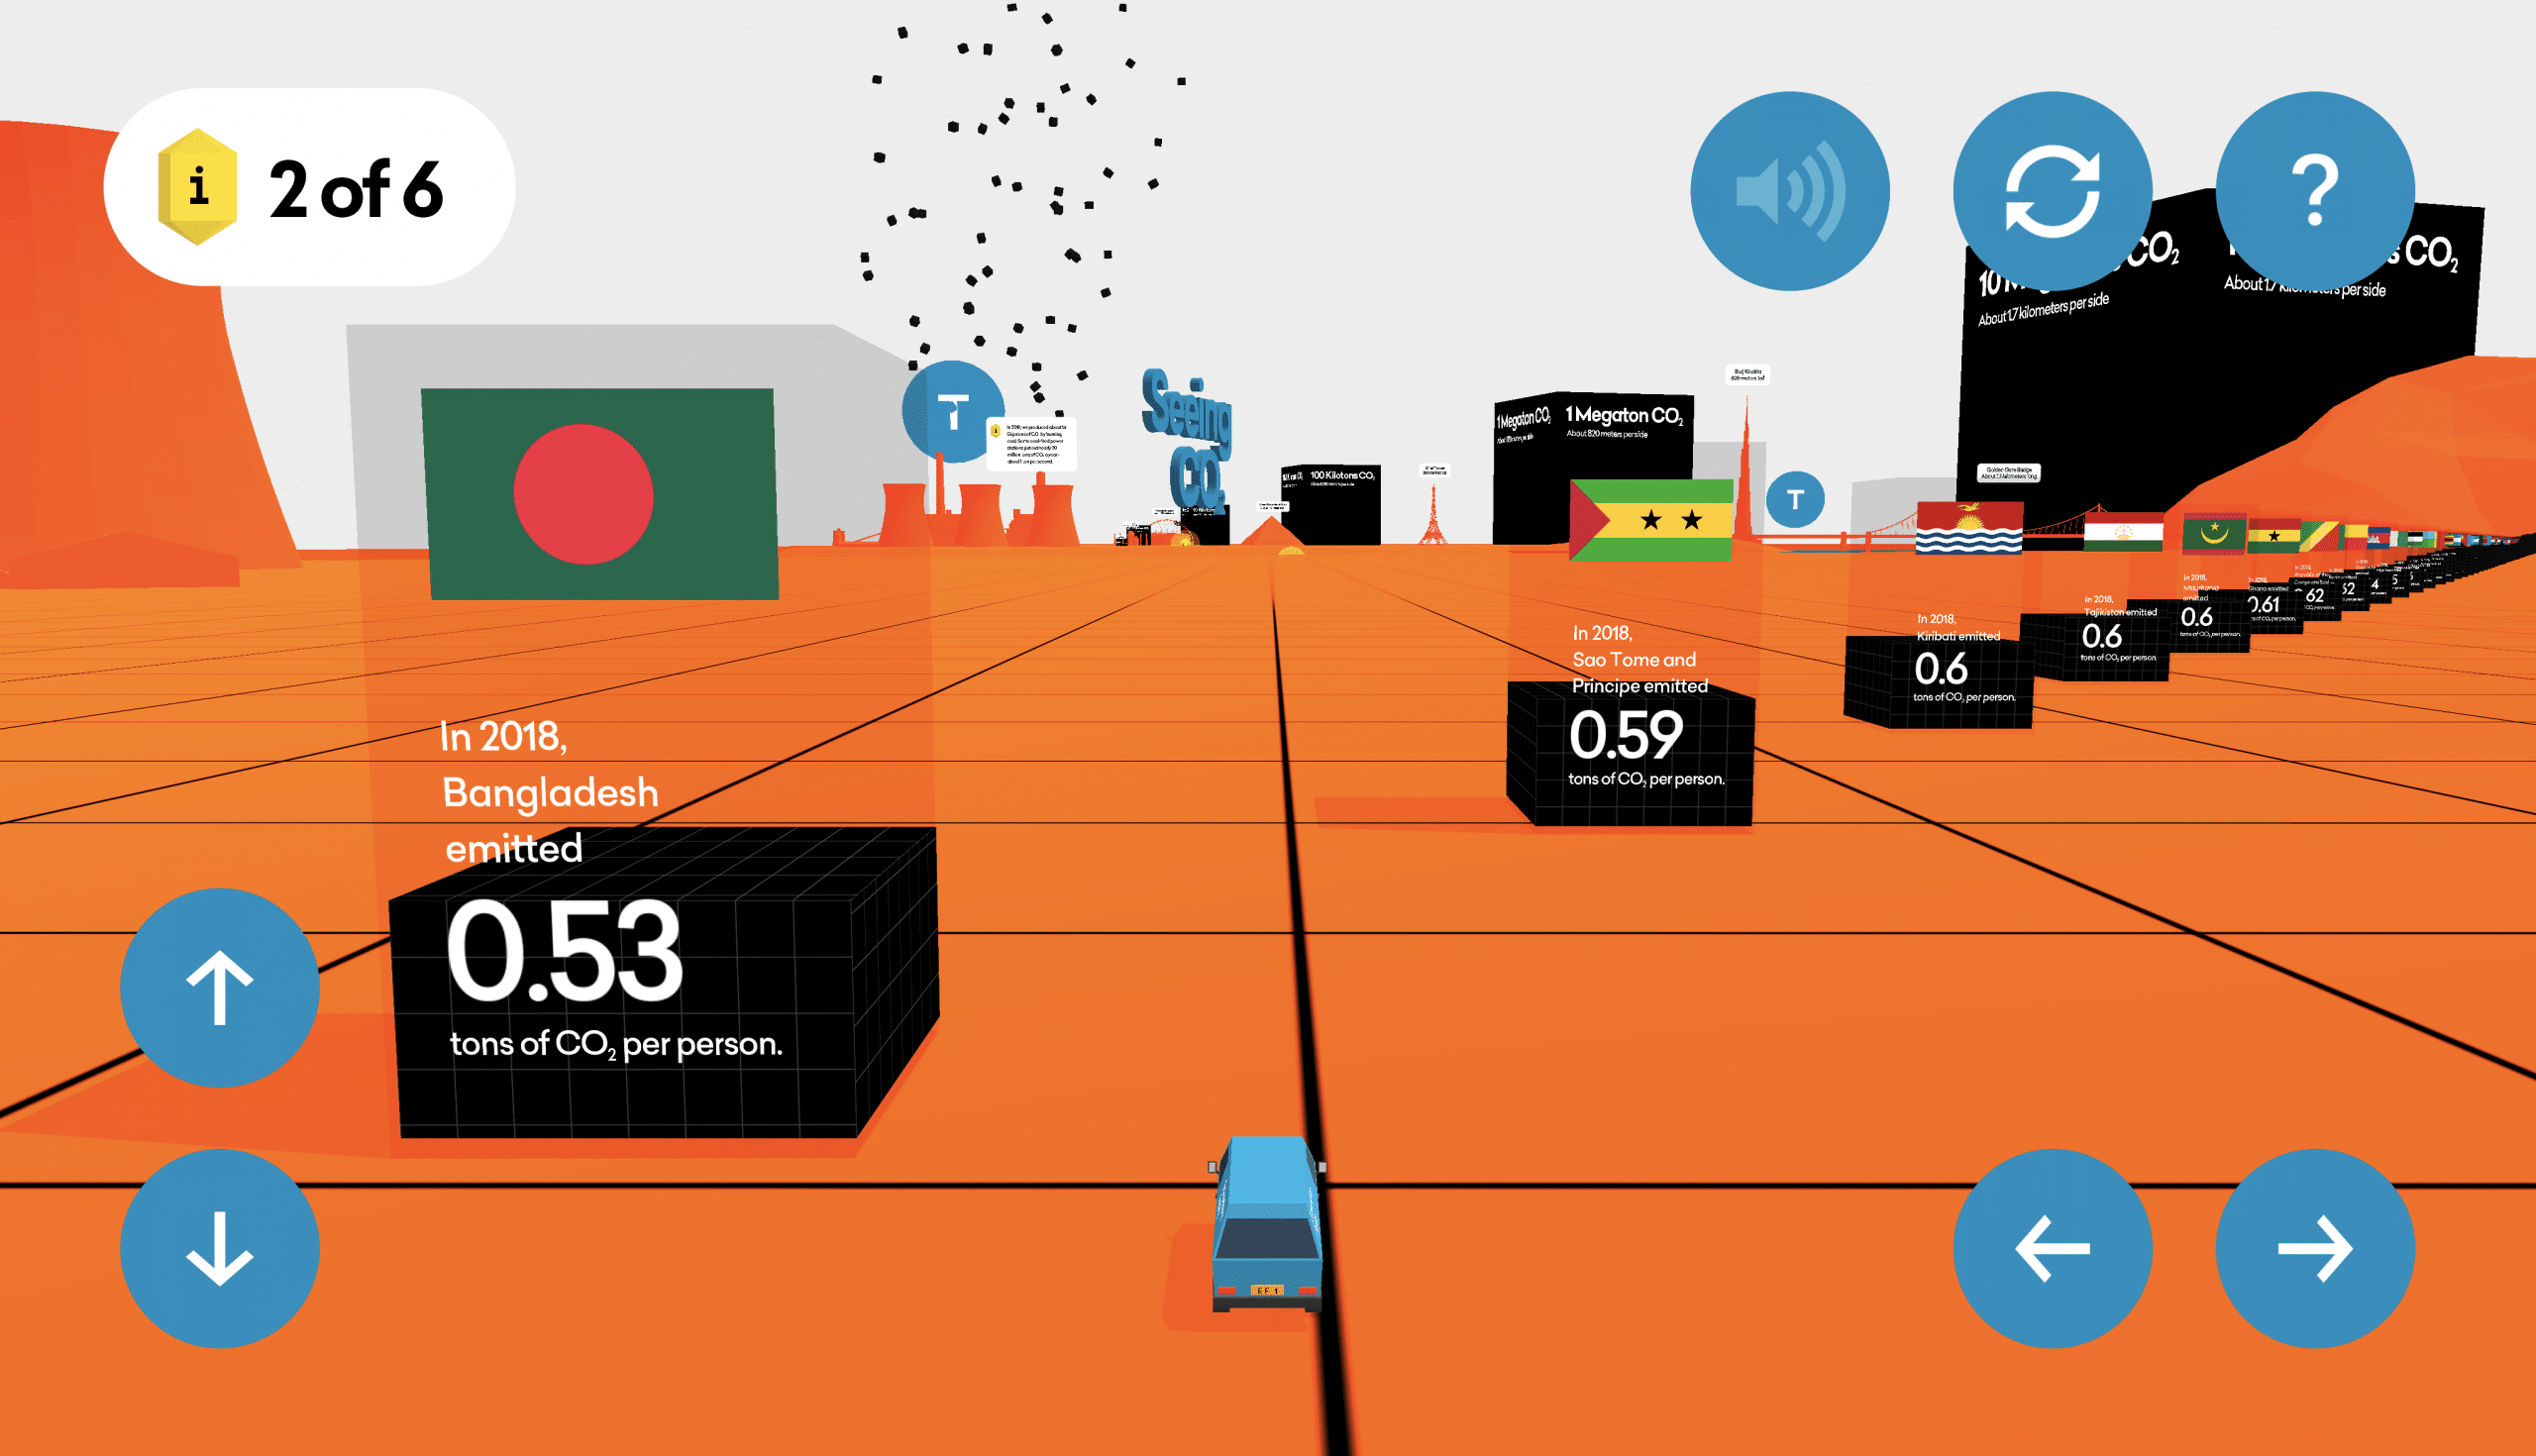 View of the per-capita CO2 emissions of Bangladesh